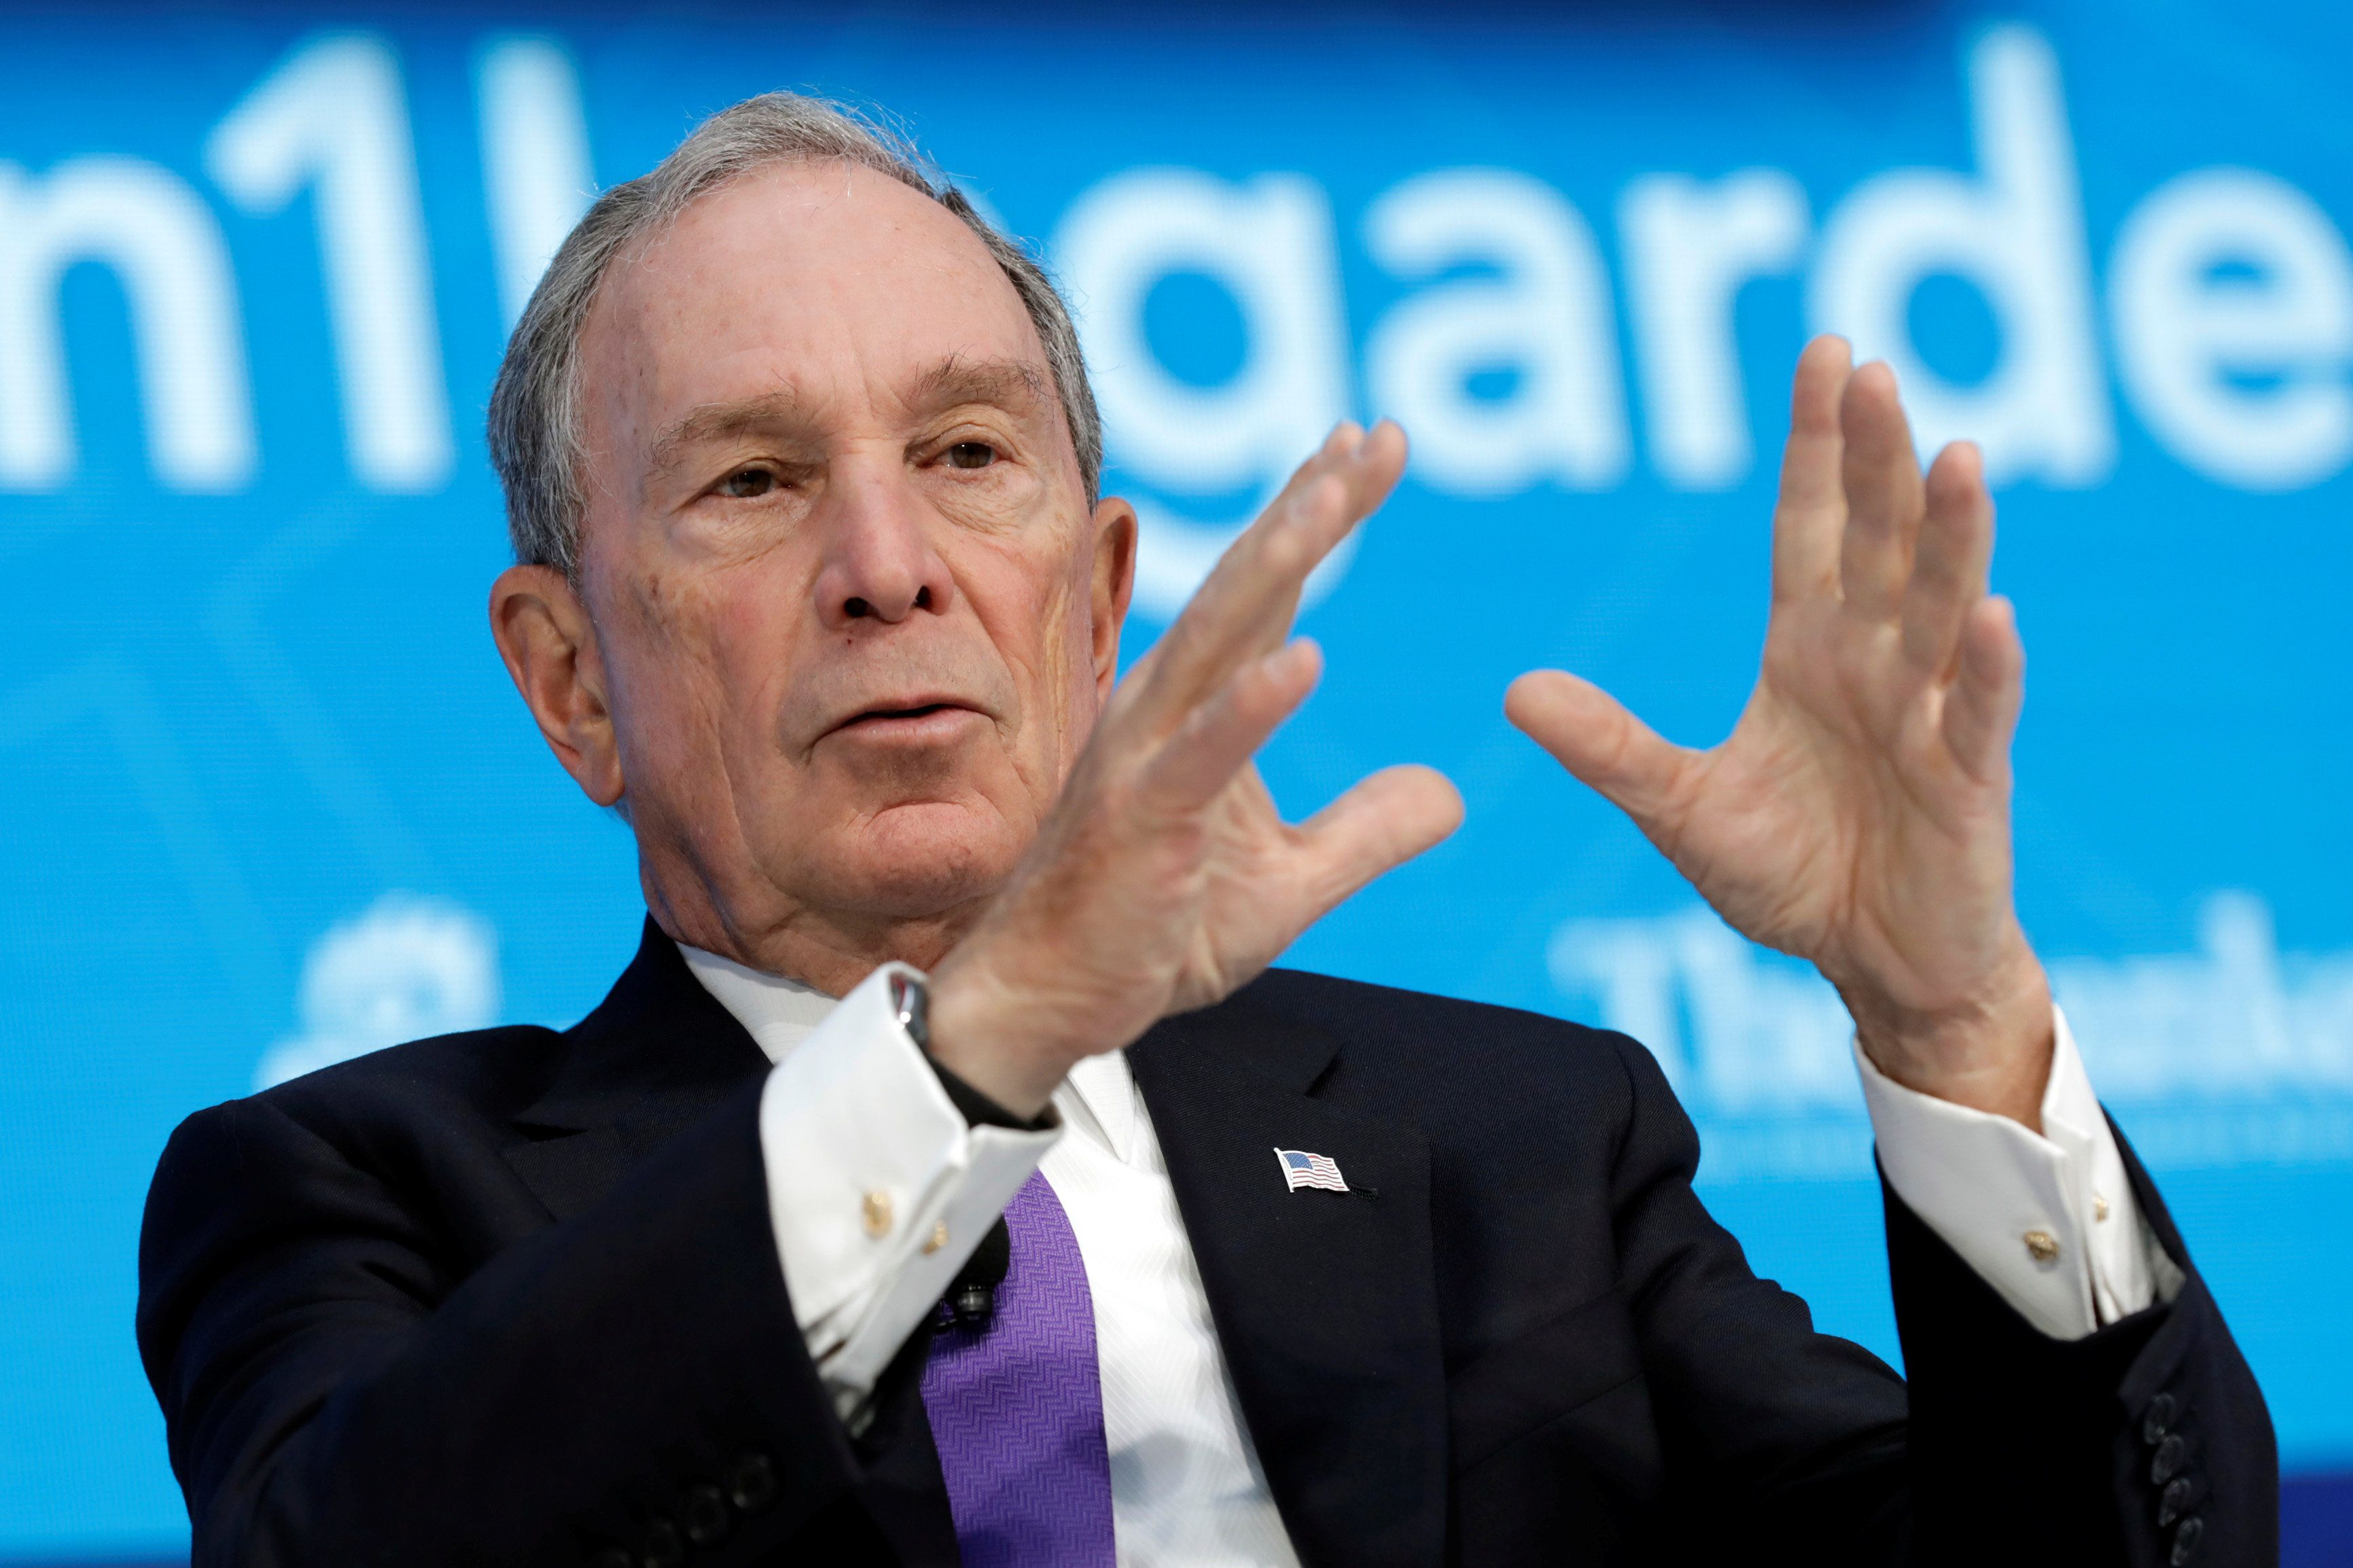 A political independent who has traditionally supported candidates on both sides of the aisle, Michael Bloomberg said this we